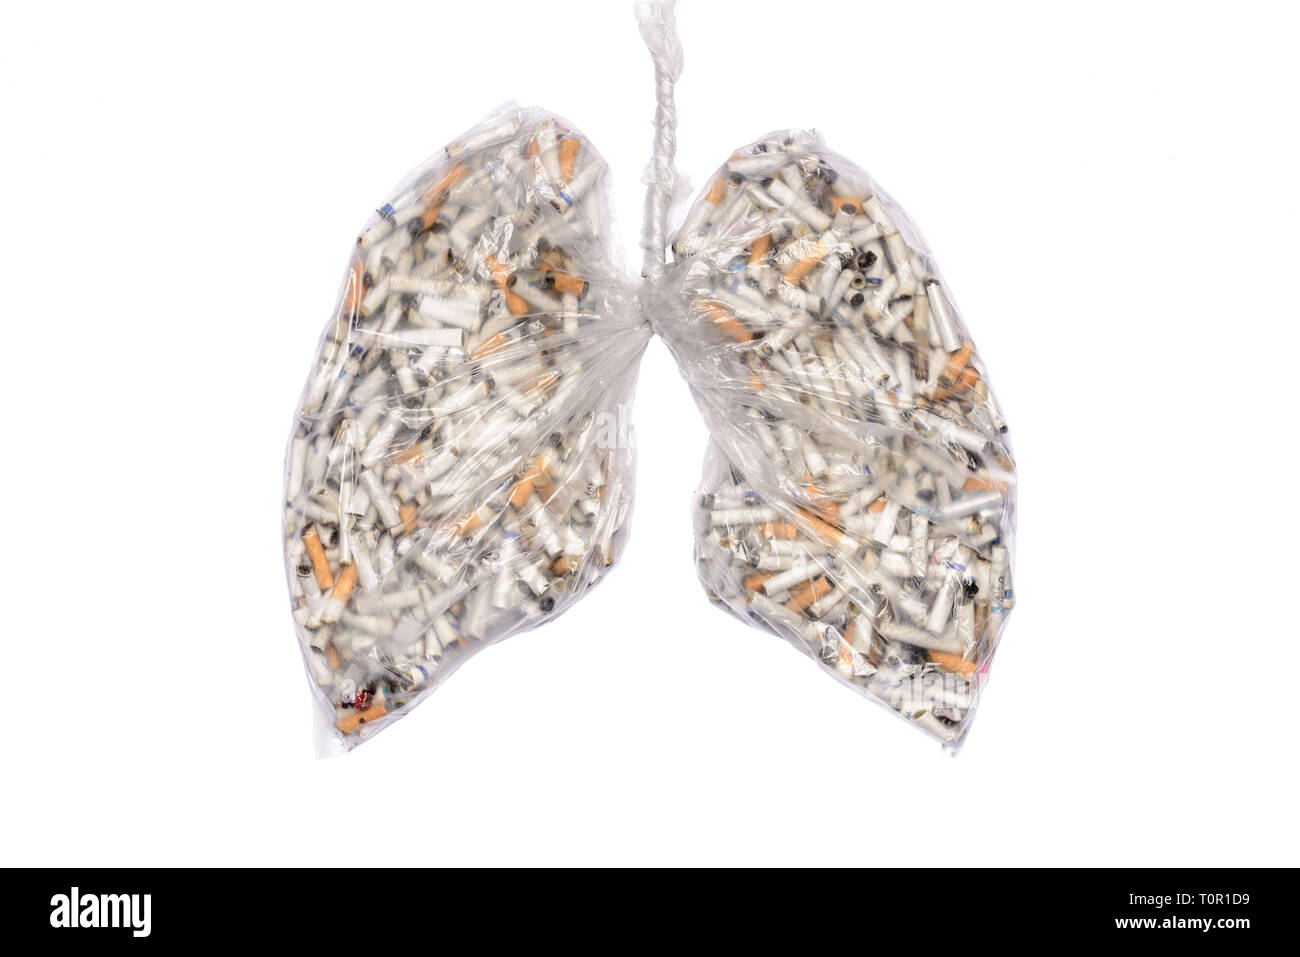 Stop smoking. Cigarette butts in pulmonary contour in transparent nylon pouch. No smoking awareness, poison and diseases of cigarette. - Stock Image